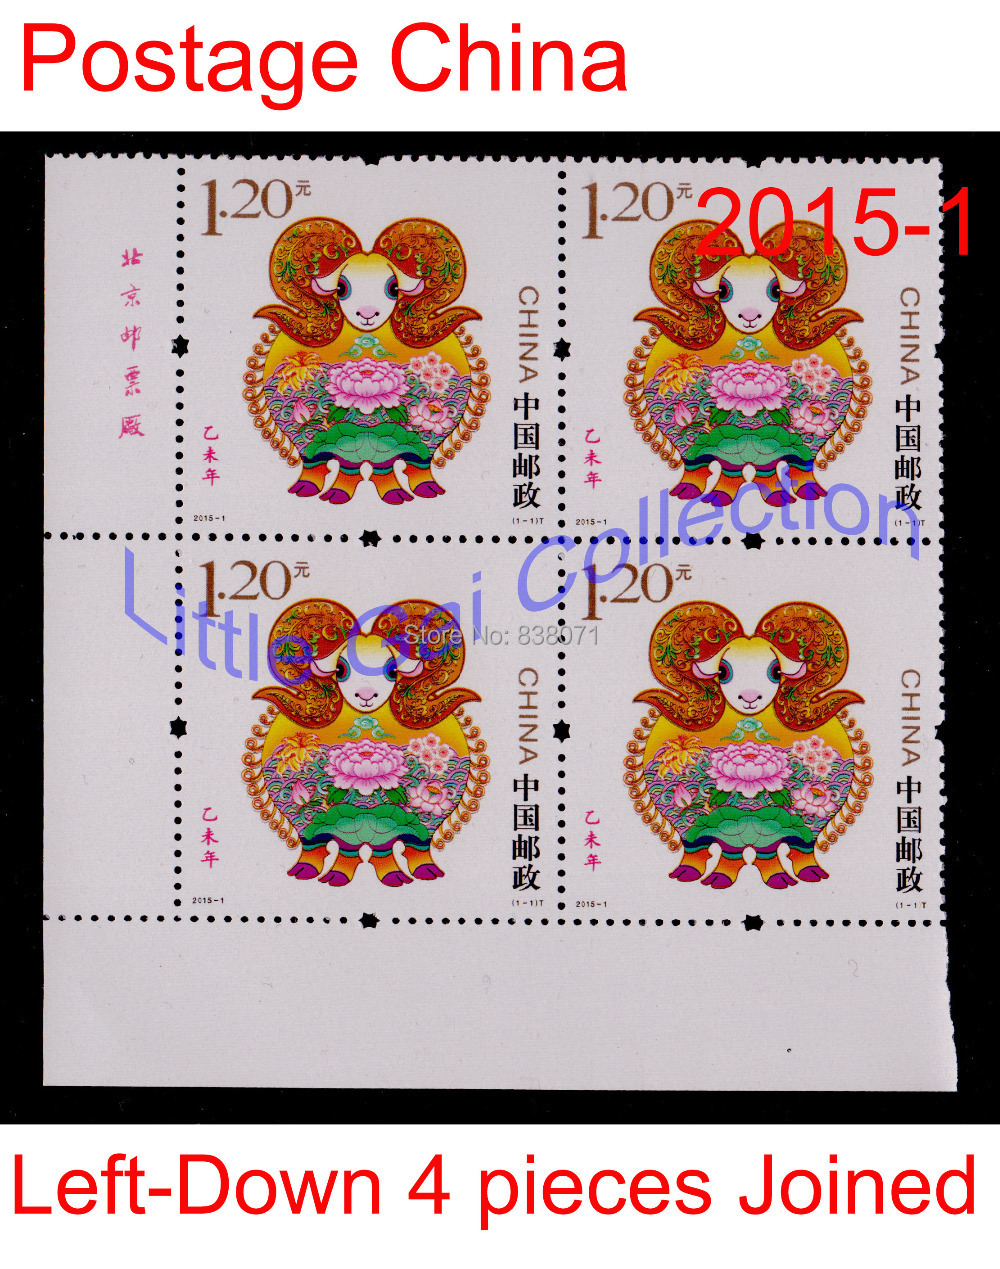 china post stamp 2015-1,the third Chinese zodiac stamps - sheep ,left - down 4 pieces joined sheet ,postage collecting,souvenir 4pcs chinese acient tower postage stamps unused new no repeat non postmark published in china best stamps collecting